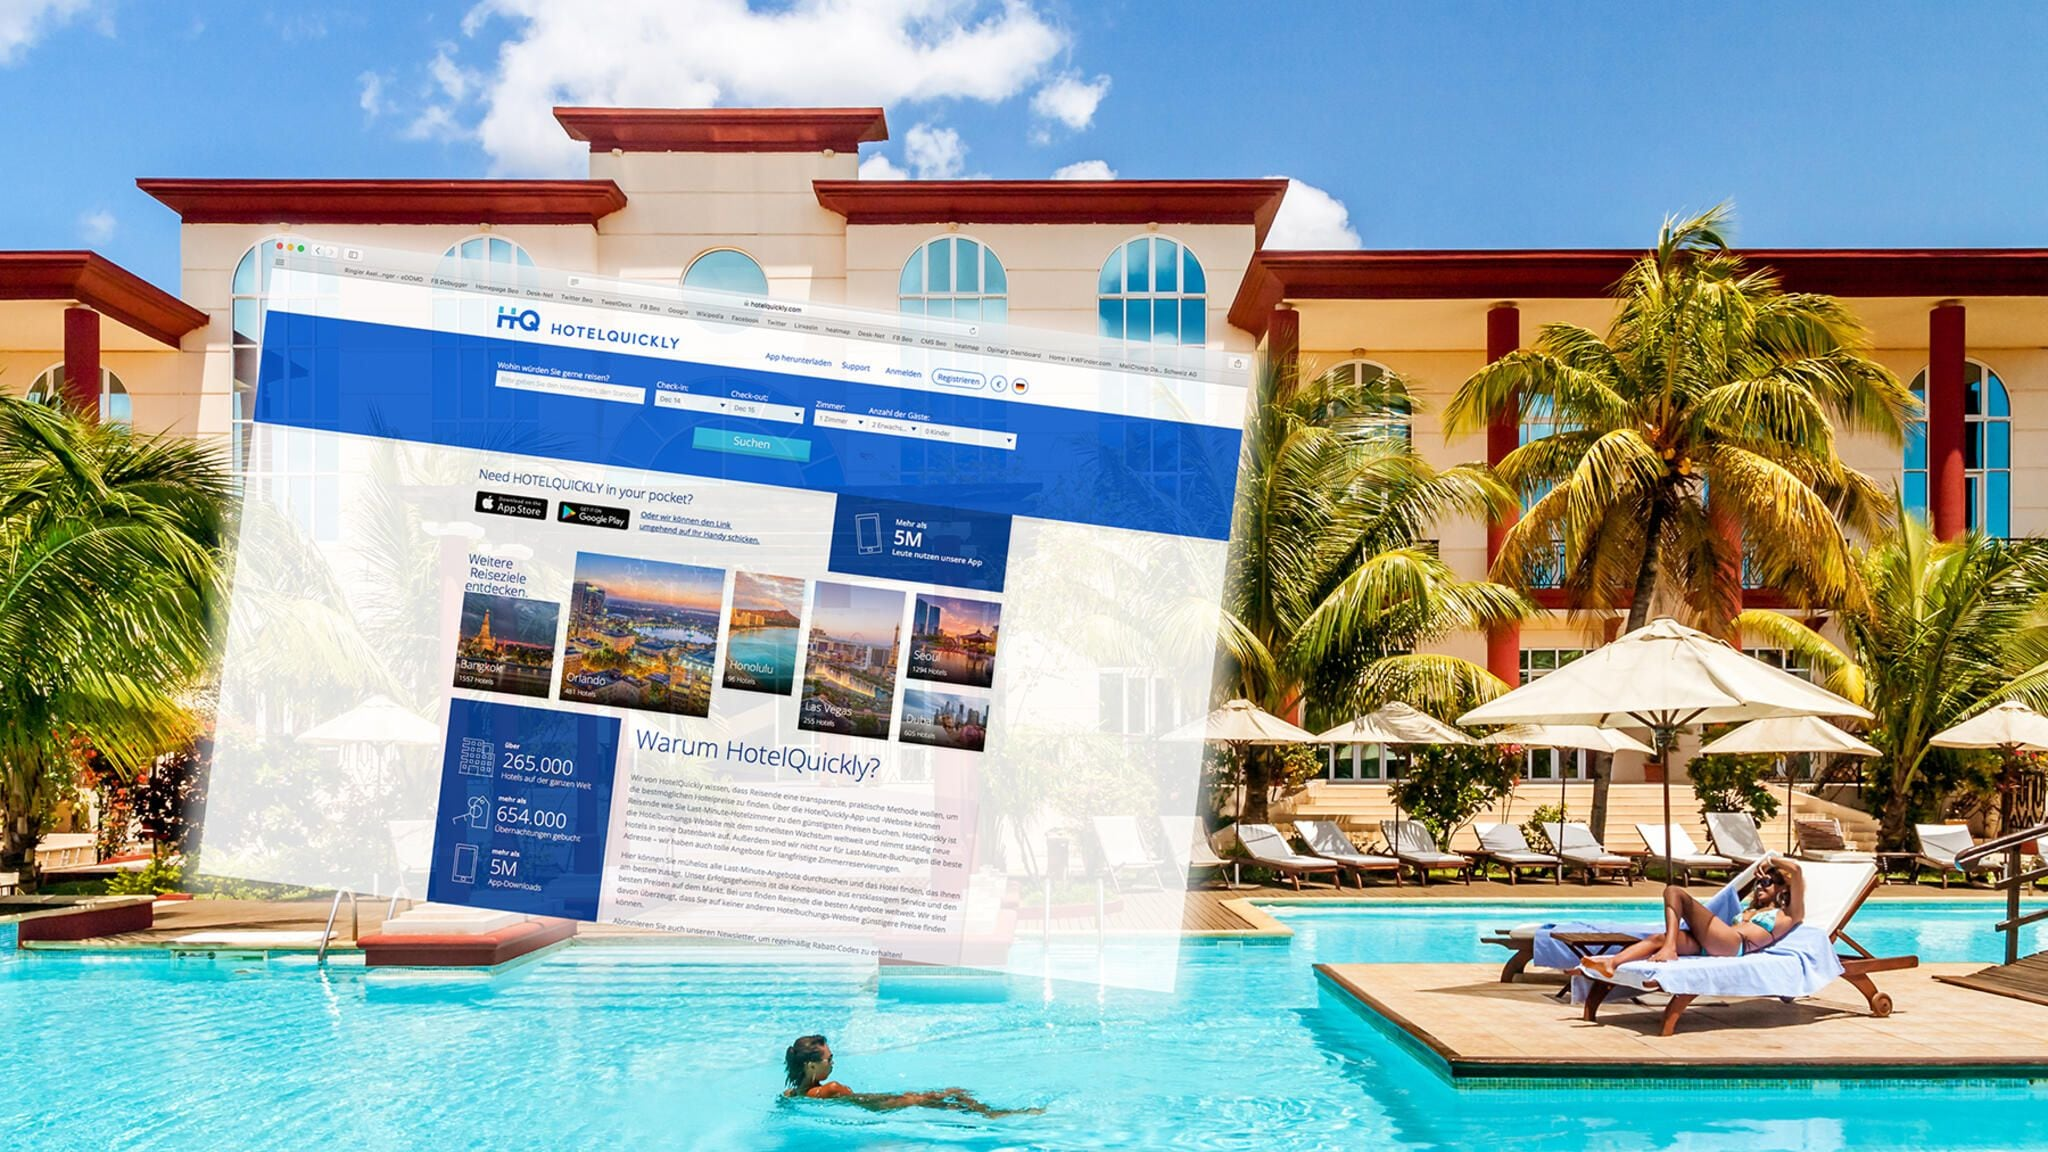 Hotelanlage mit Pool und Screenshot der Hotelquickly-Website